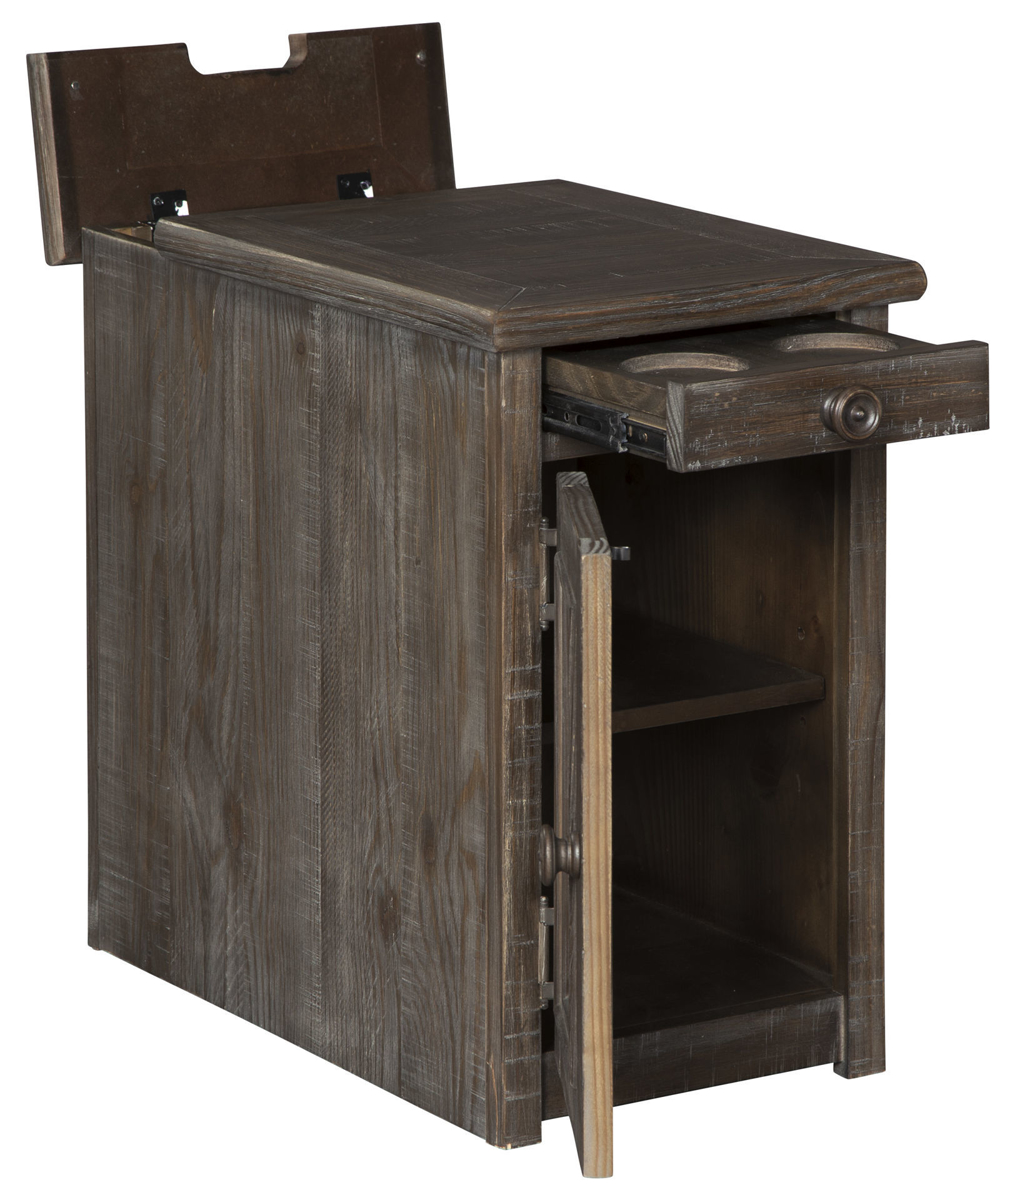 Picture of WYATT CHAIRSIDE TABLE W/TRAY